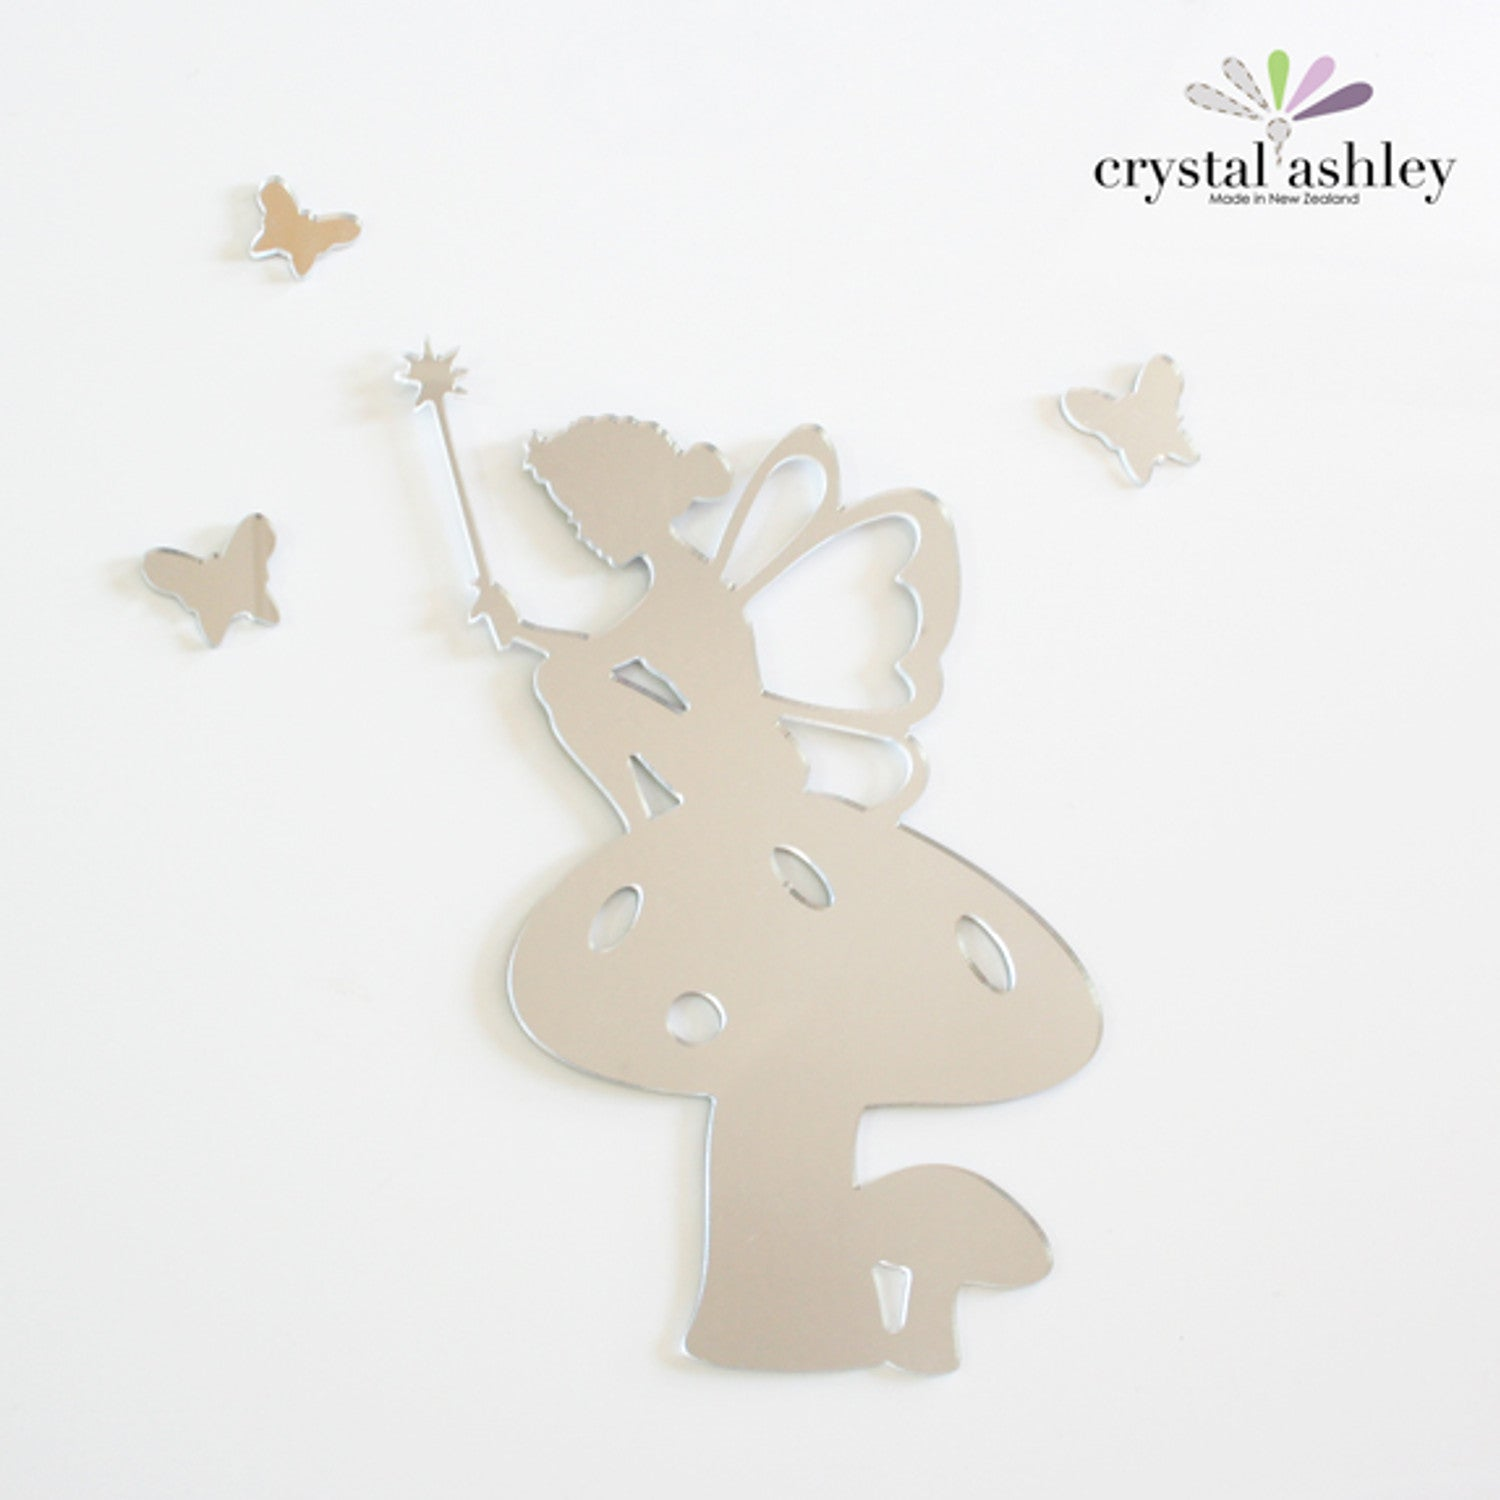 Crystal Ashley Wall Art - Tinkerbell on Toadstool - The Furniture Store & The Bed Shop